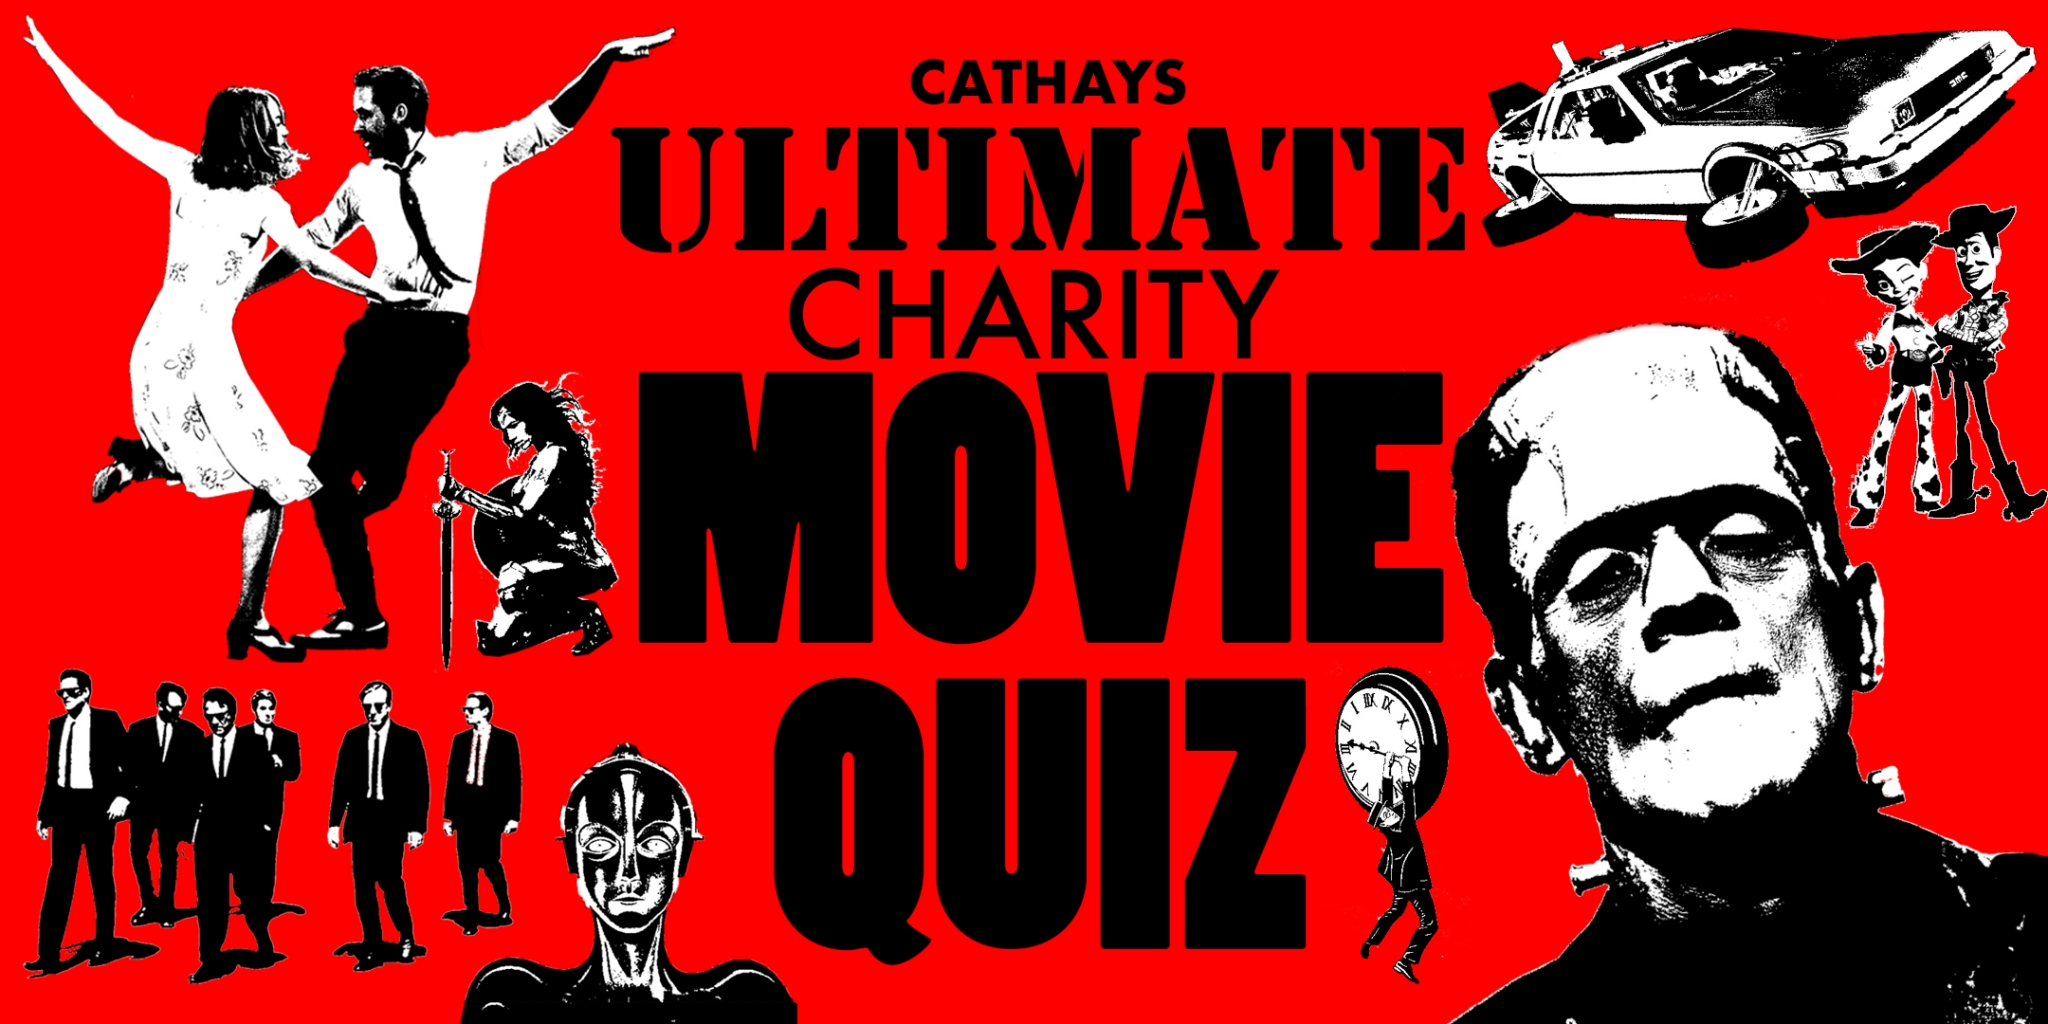 Cathays Ultimate Charity Movie Quiz Night – Sat October 13th